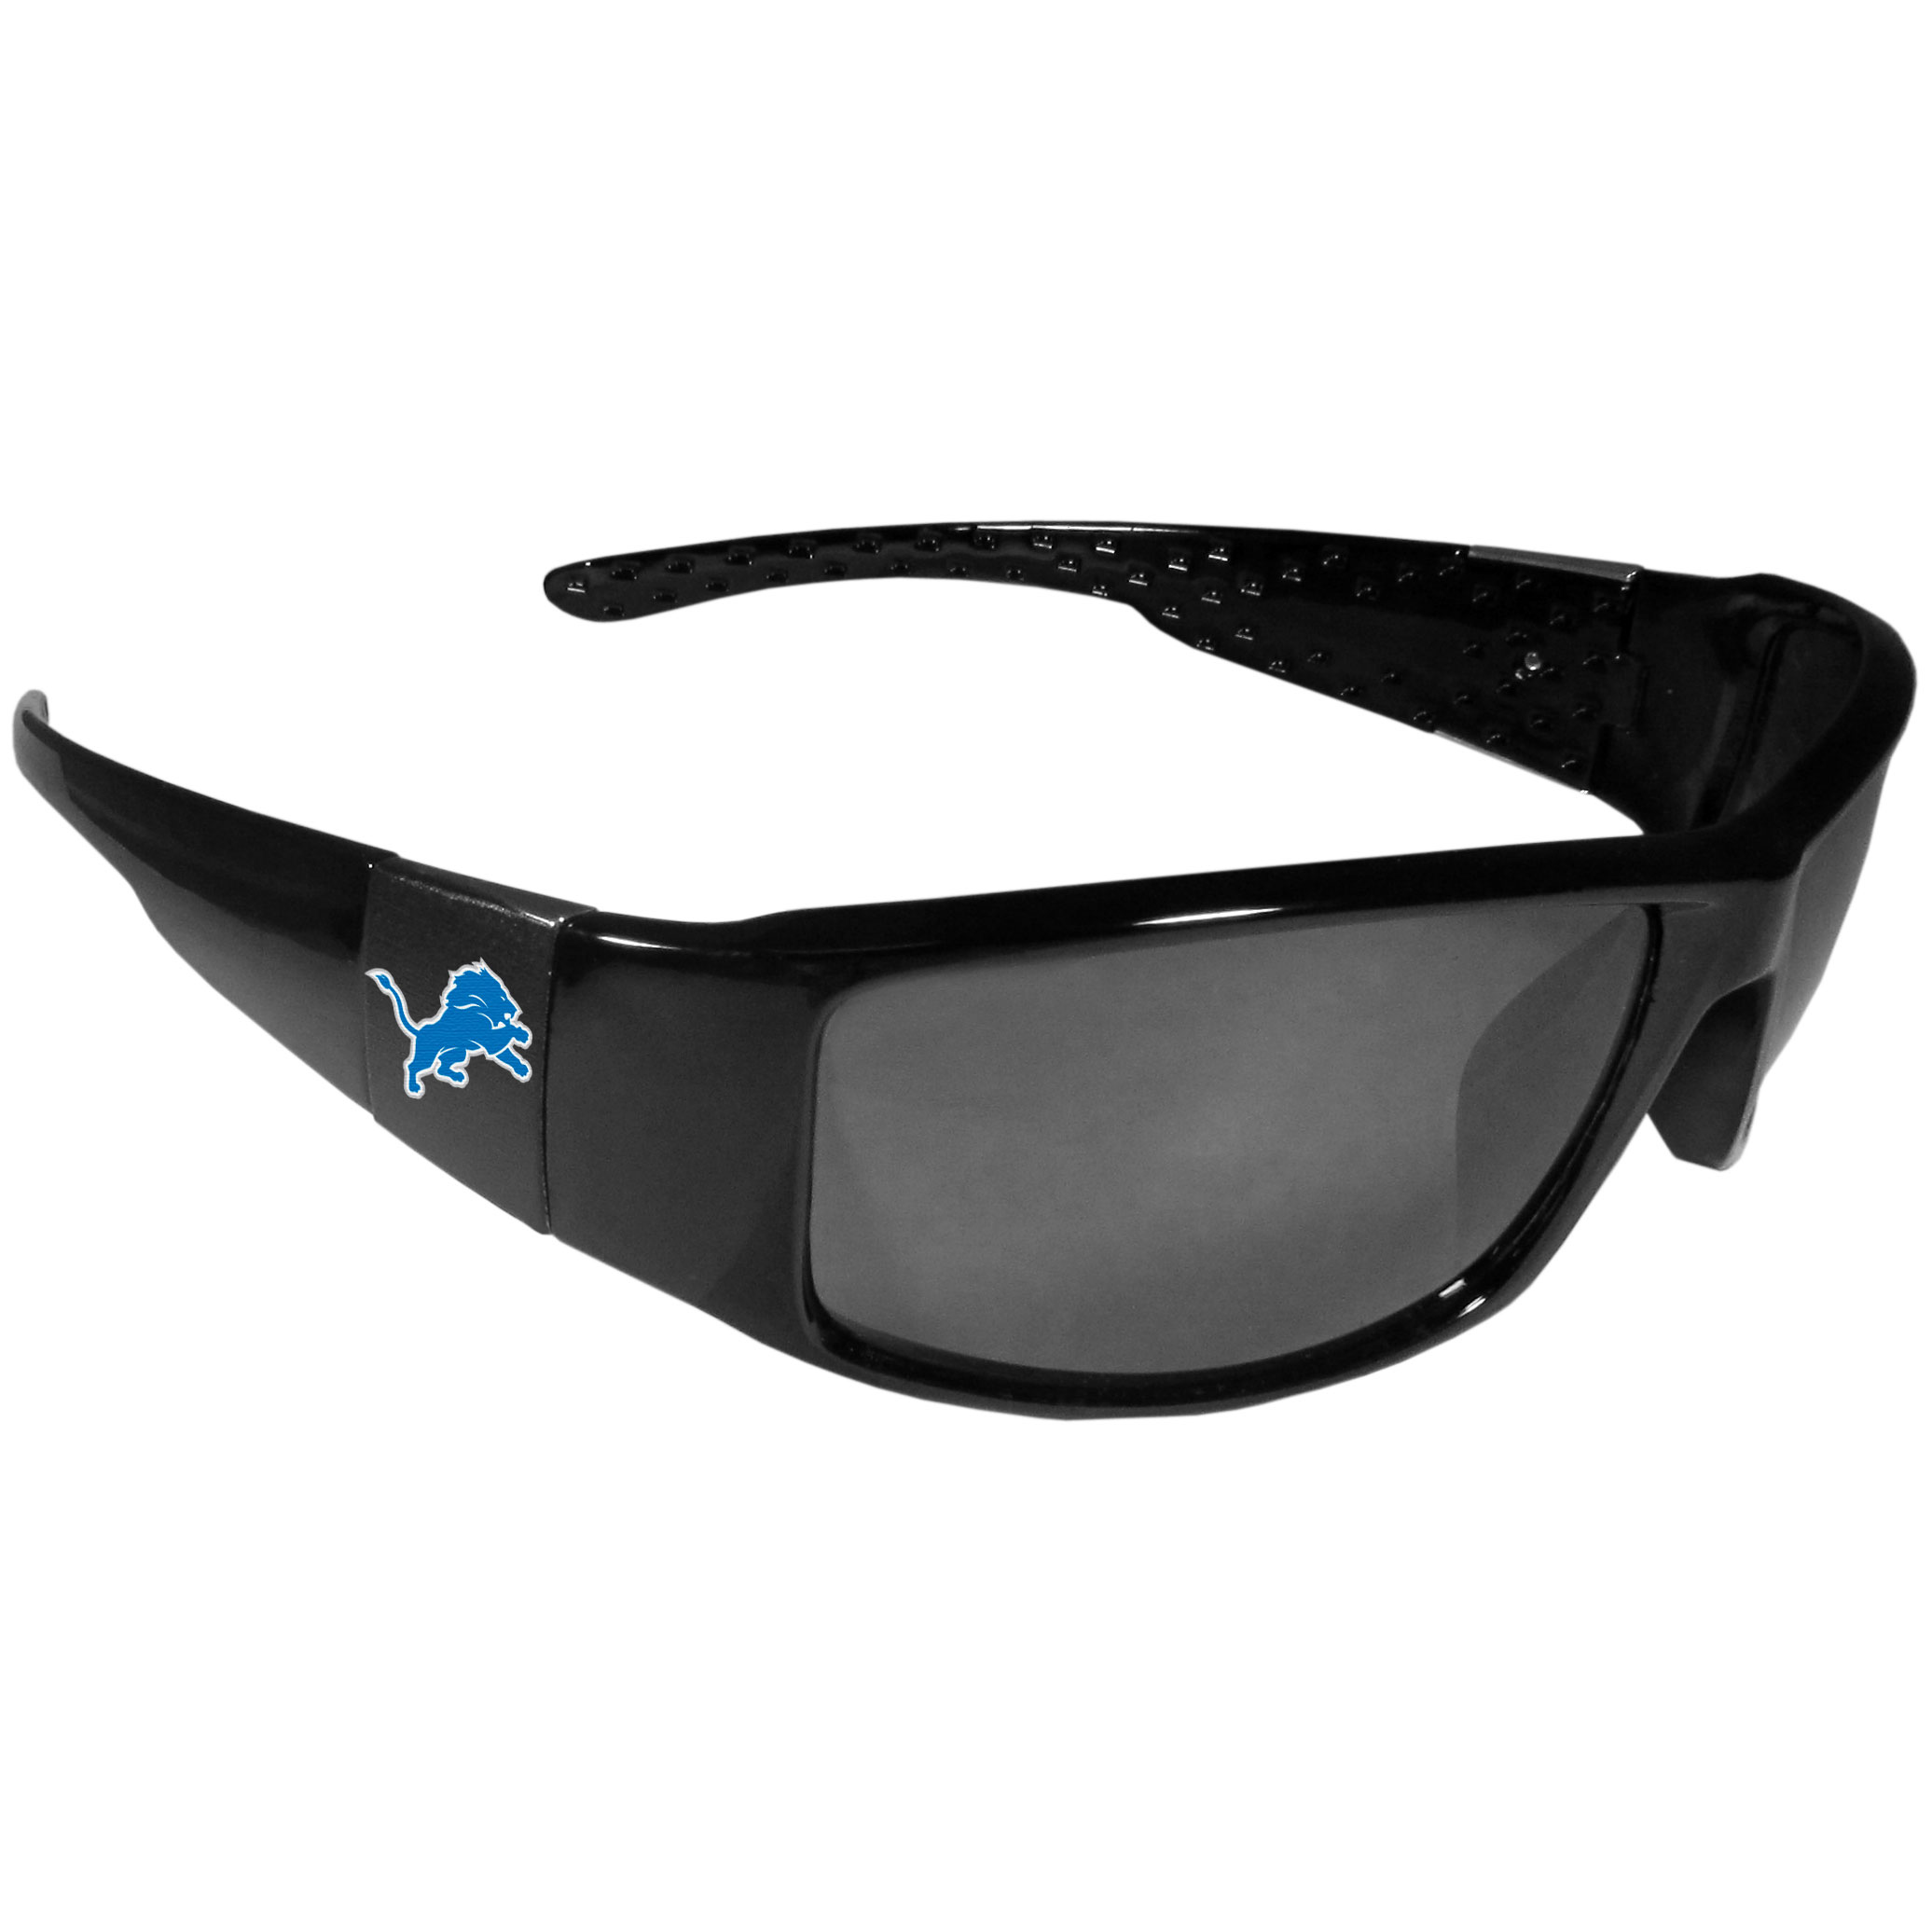 Detroit Lions Black Wrap Sunglasses - These designer inspired frames have a sleek look in all black with  Detroit Lions shields on each arm with a printed logo. The shades are perfect for any outdoor activity like; golfing, driving, hiking, fishing or cheering on the team at a tailgating event or at a home game day BBQ with a lens rating of 100% UVA/UVB for maximum UV protection. The high-quality frames are as durable as they are fashionable and with their classic look they are the perfect fan accessory that can be worn everyday for every occasion.